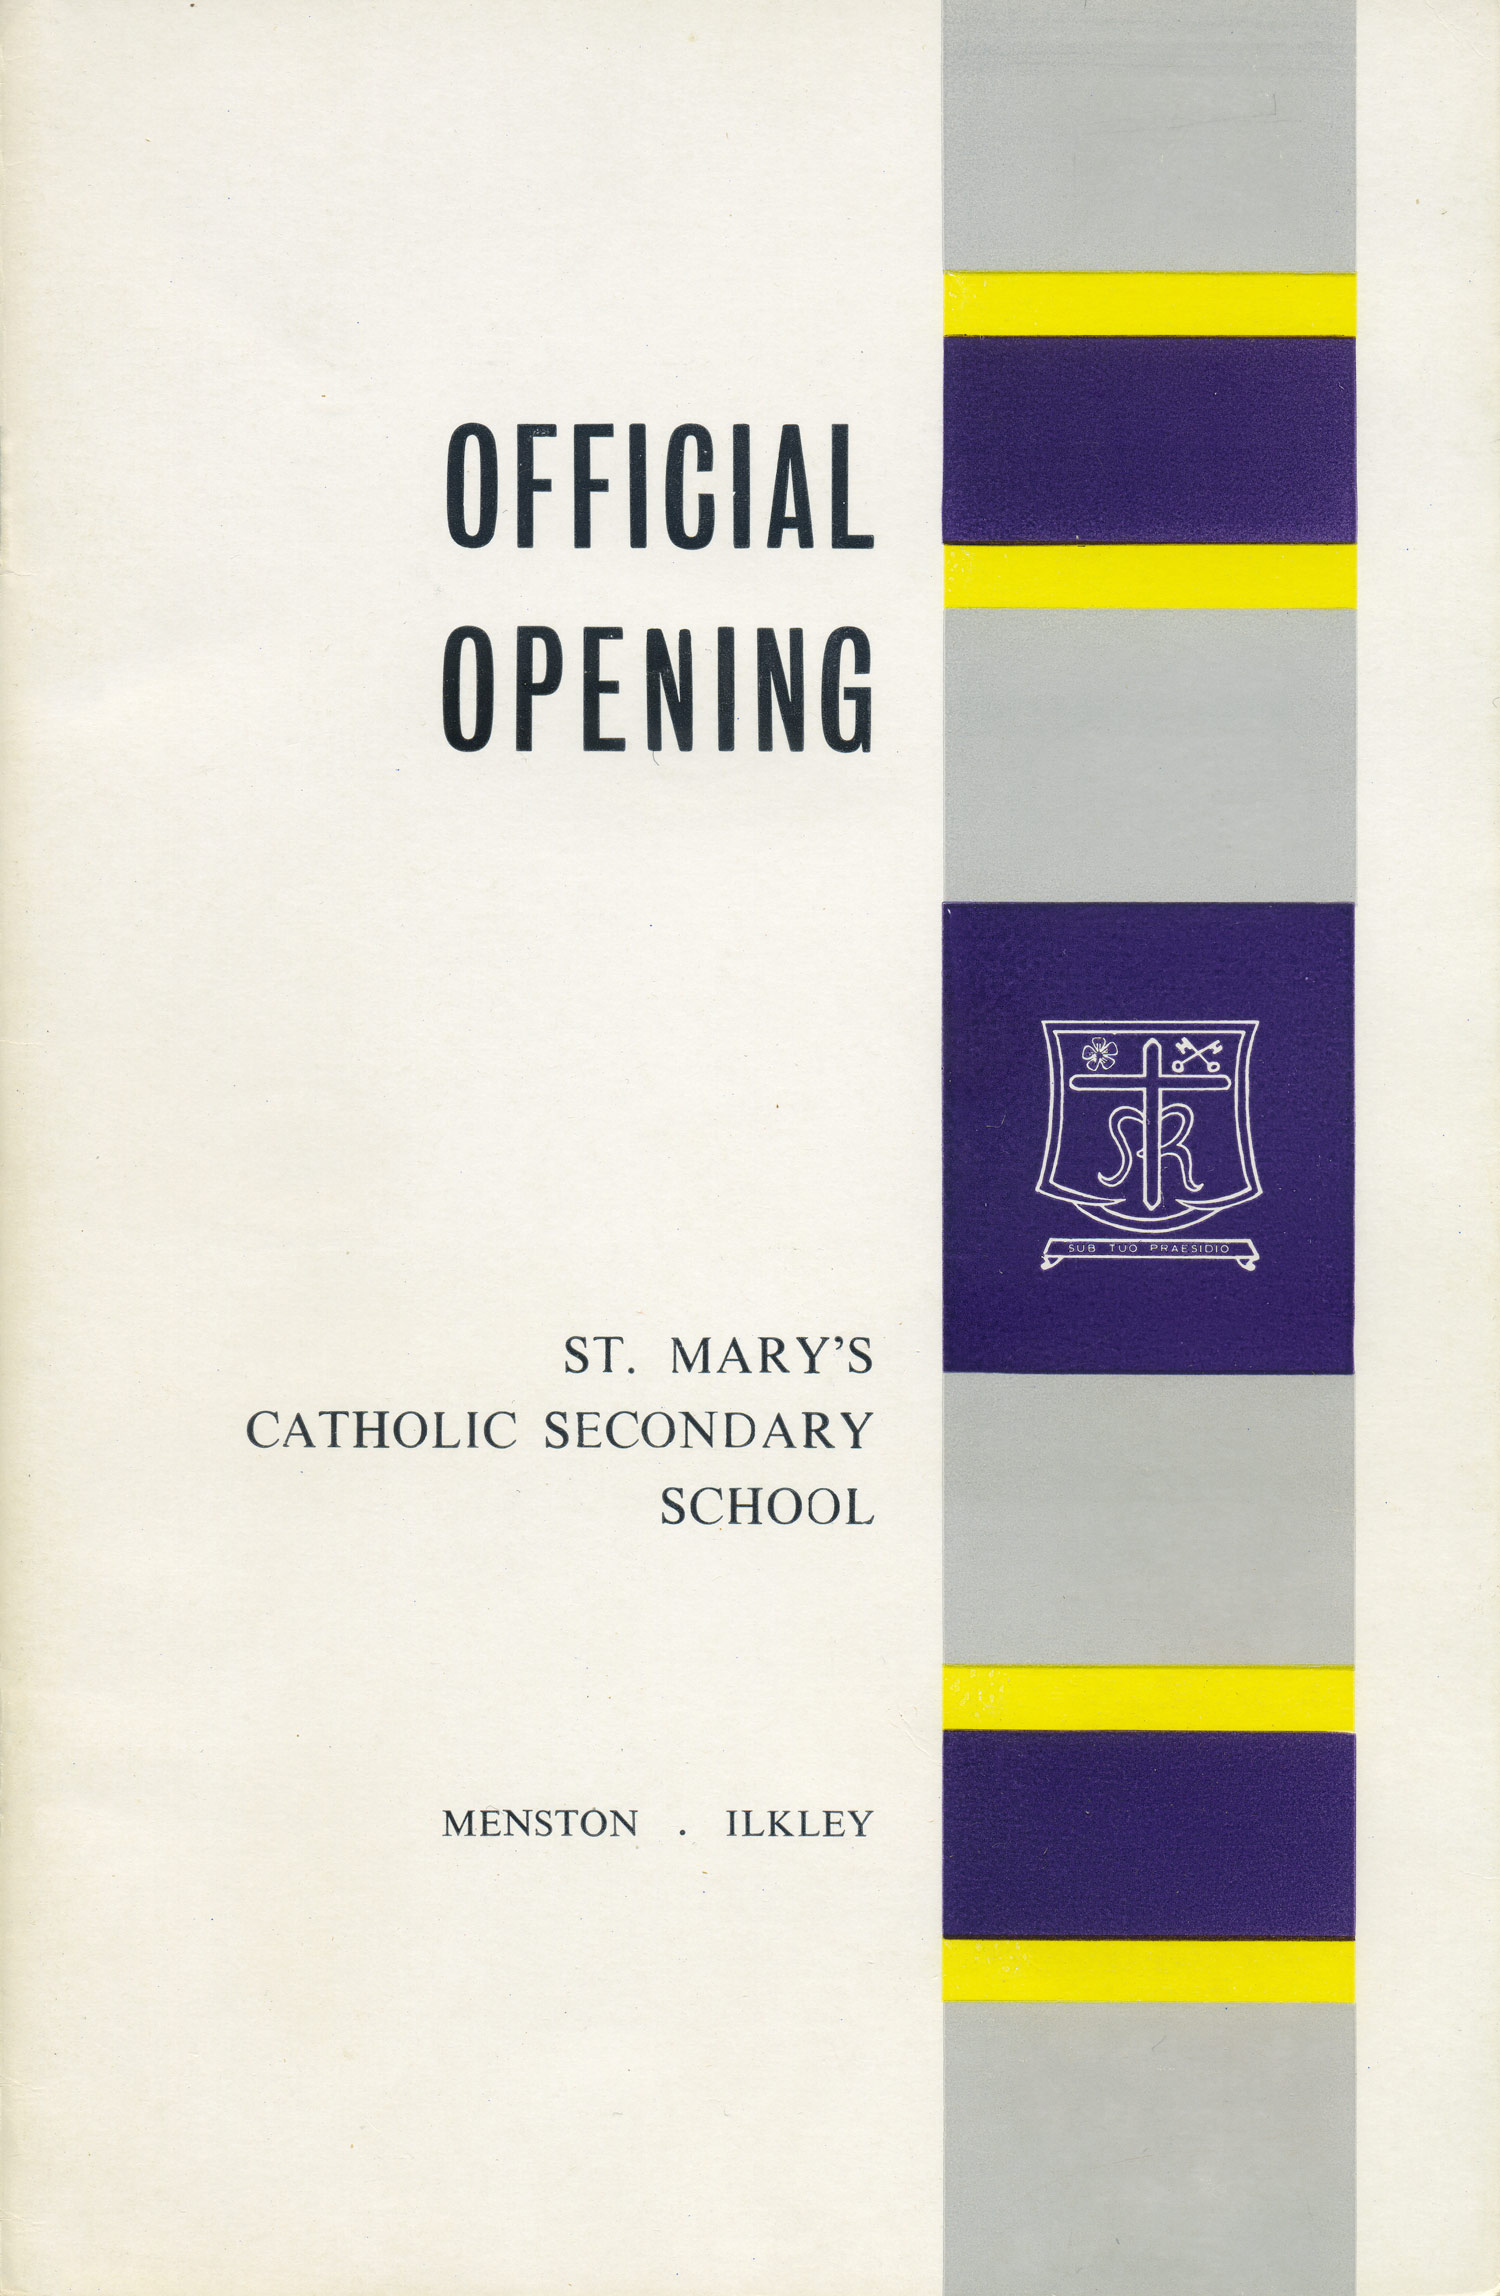 Our school crest at the official opening of St. Mary's Menston, 3 July 1964